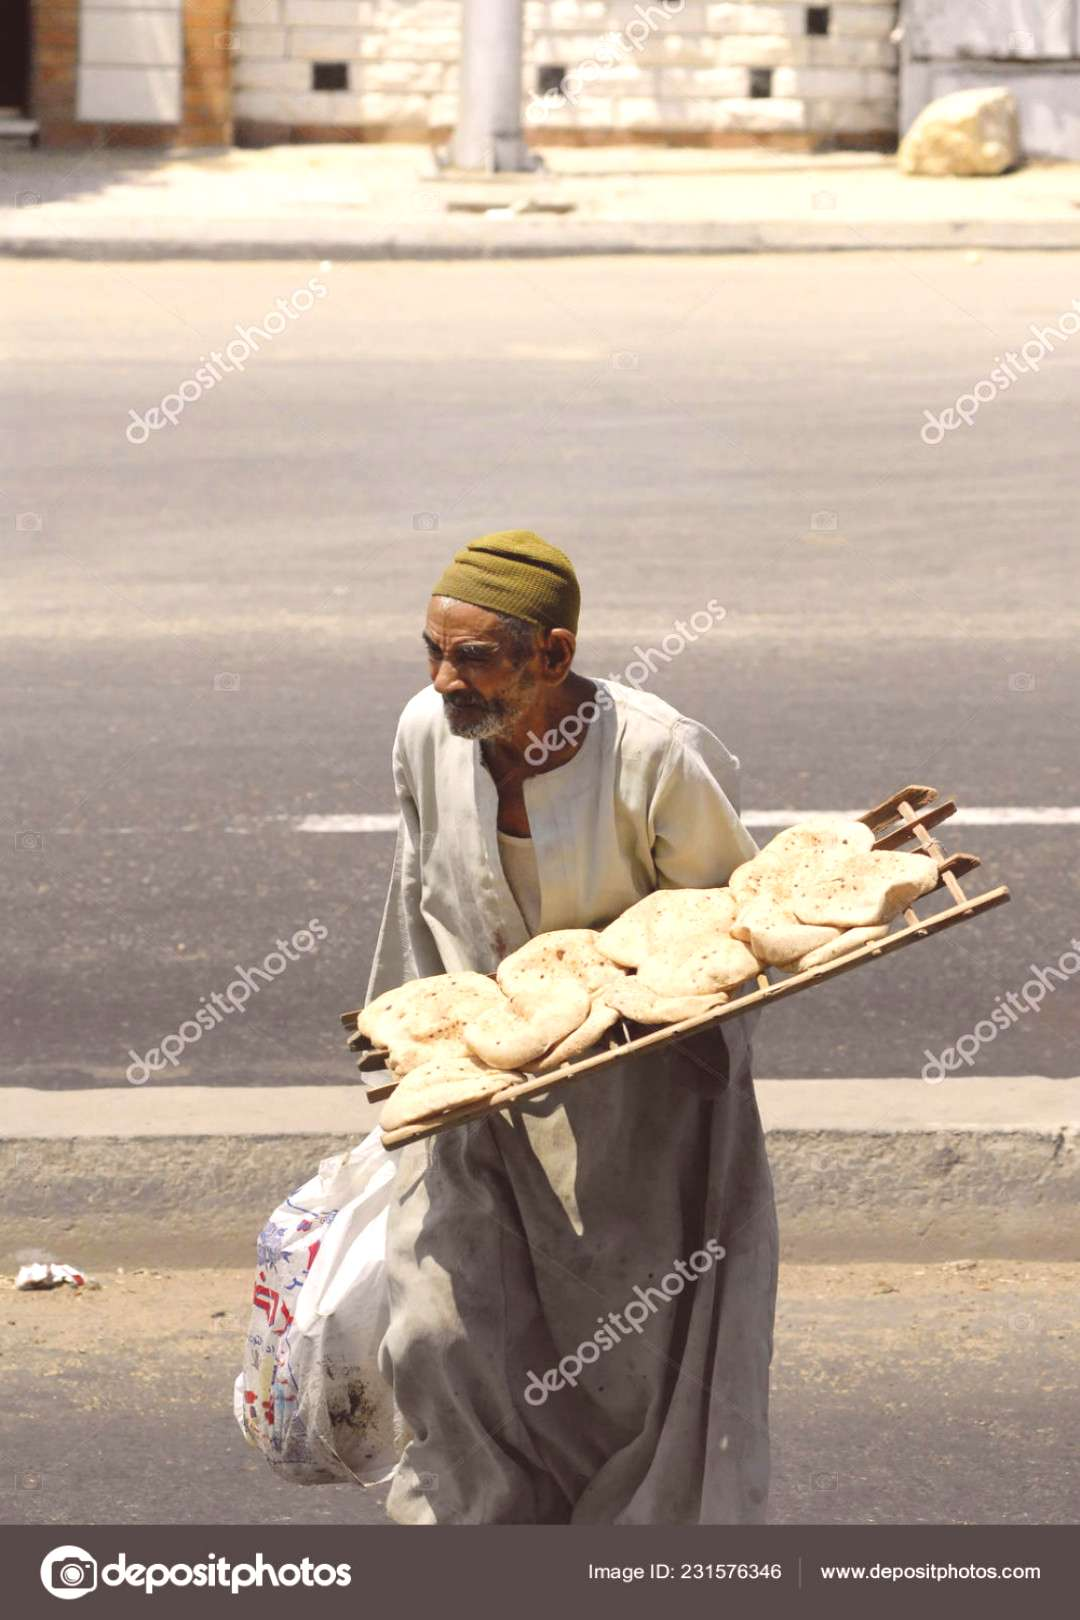 Download - CAIRO, EGYPT - AUGUST 3 The poor old man sells wheat flat cakes near...#august